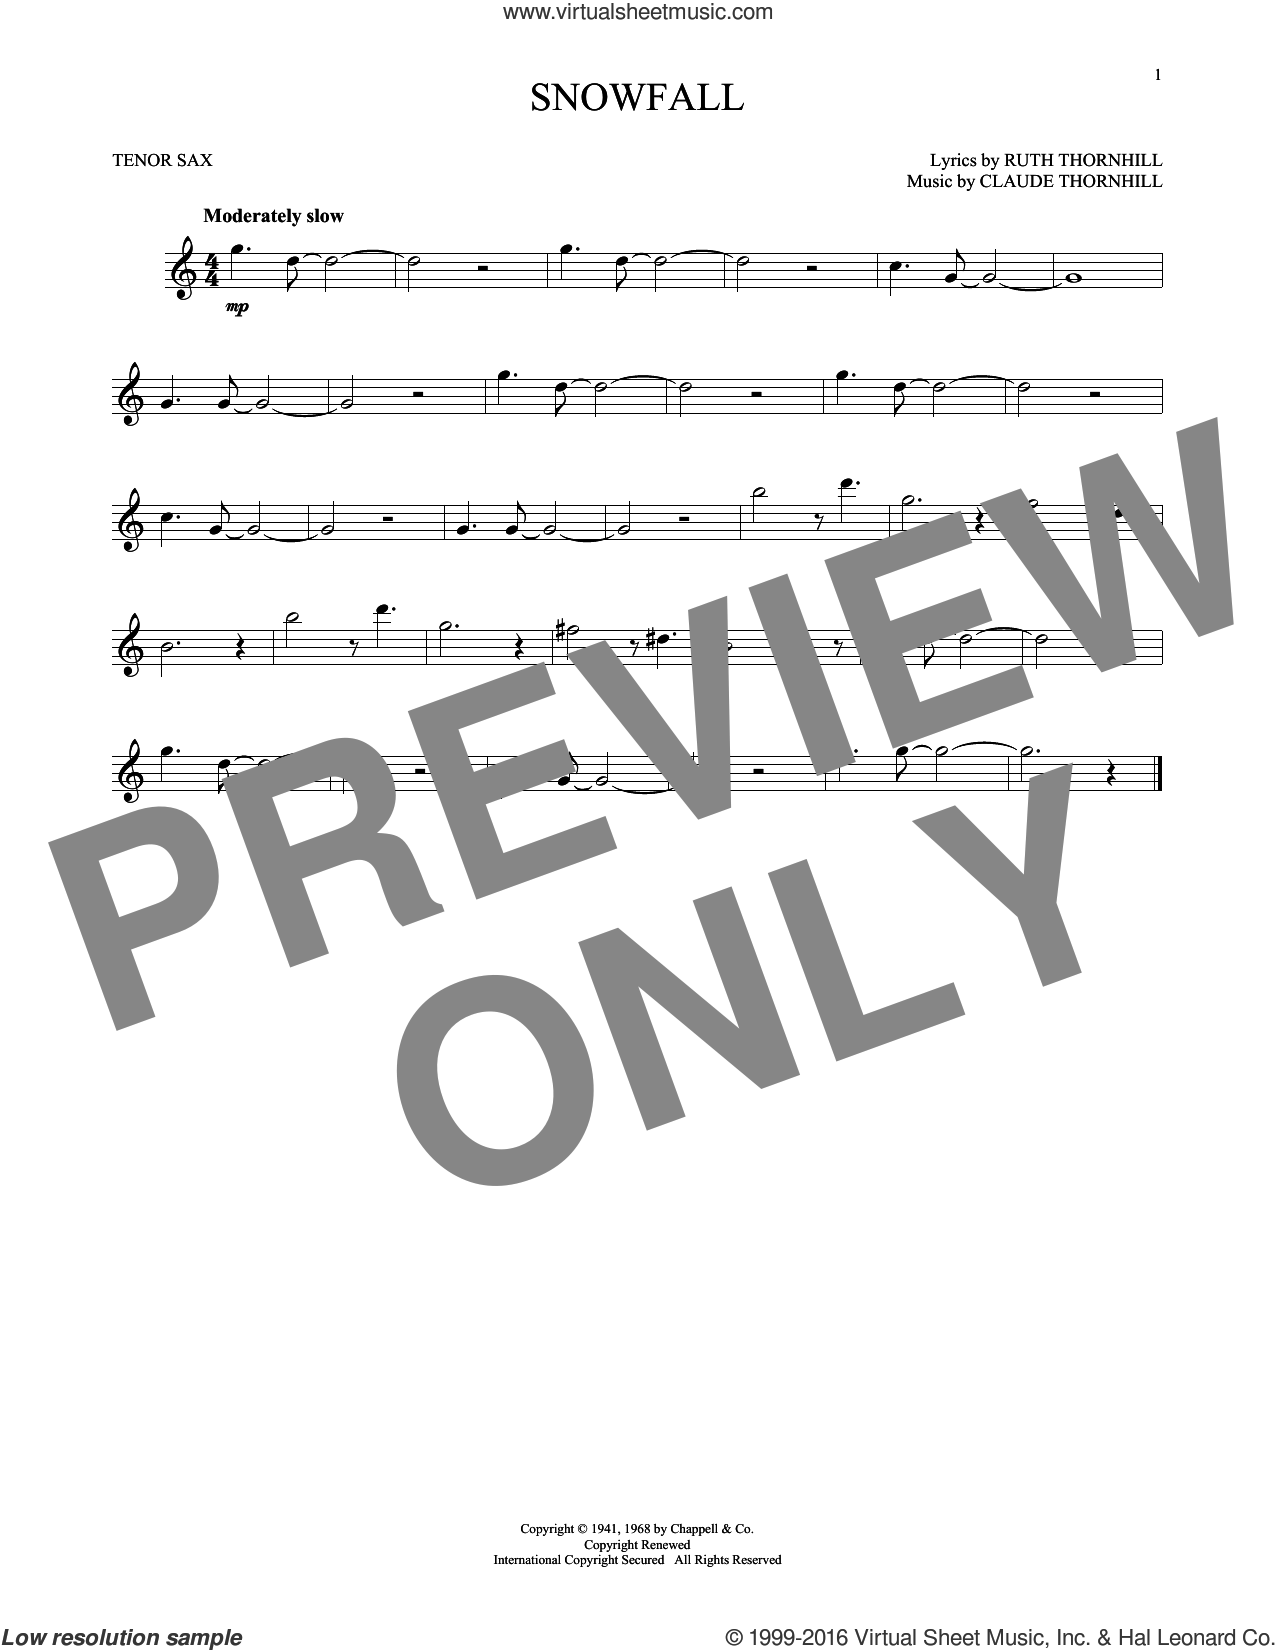 Snowfall sheet music for tenor saxophone solo by Claude Thornhill, Tony Bennett, Claude & Ruth Thornhill and Ruth Thornhill, intermediate skill level